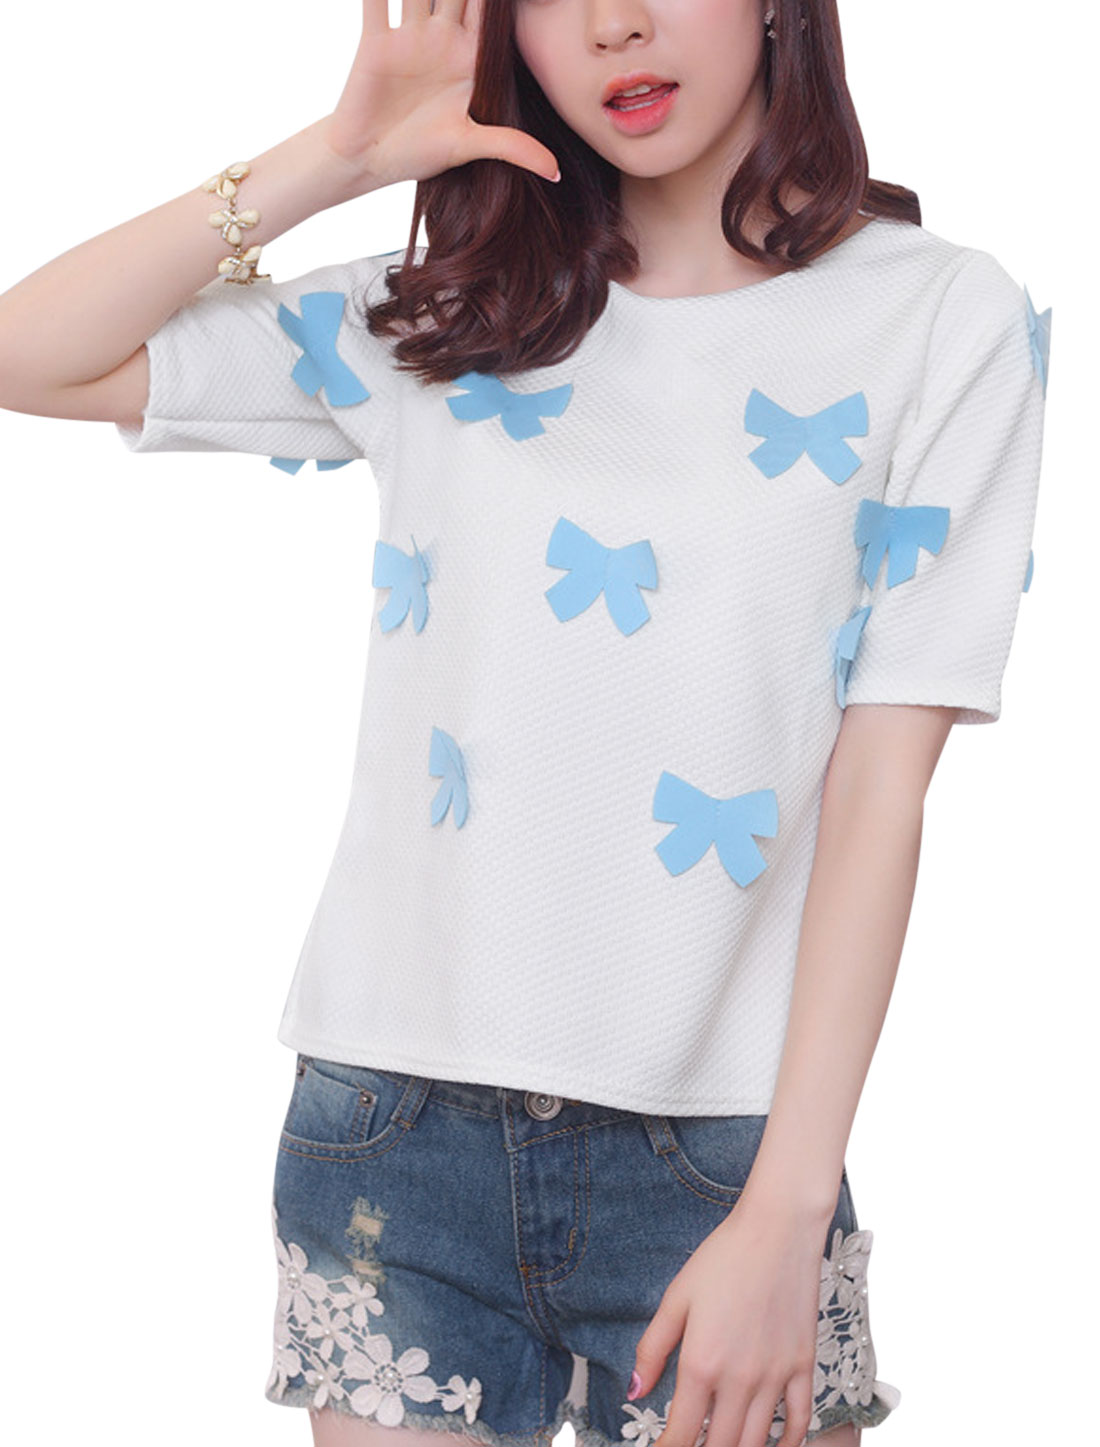 Lady White Blue Casual Style Short-sleeves Chic T-Shirt XS